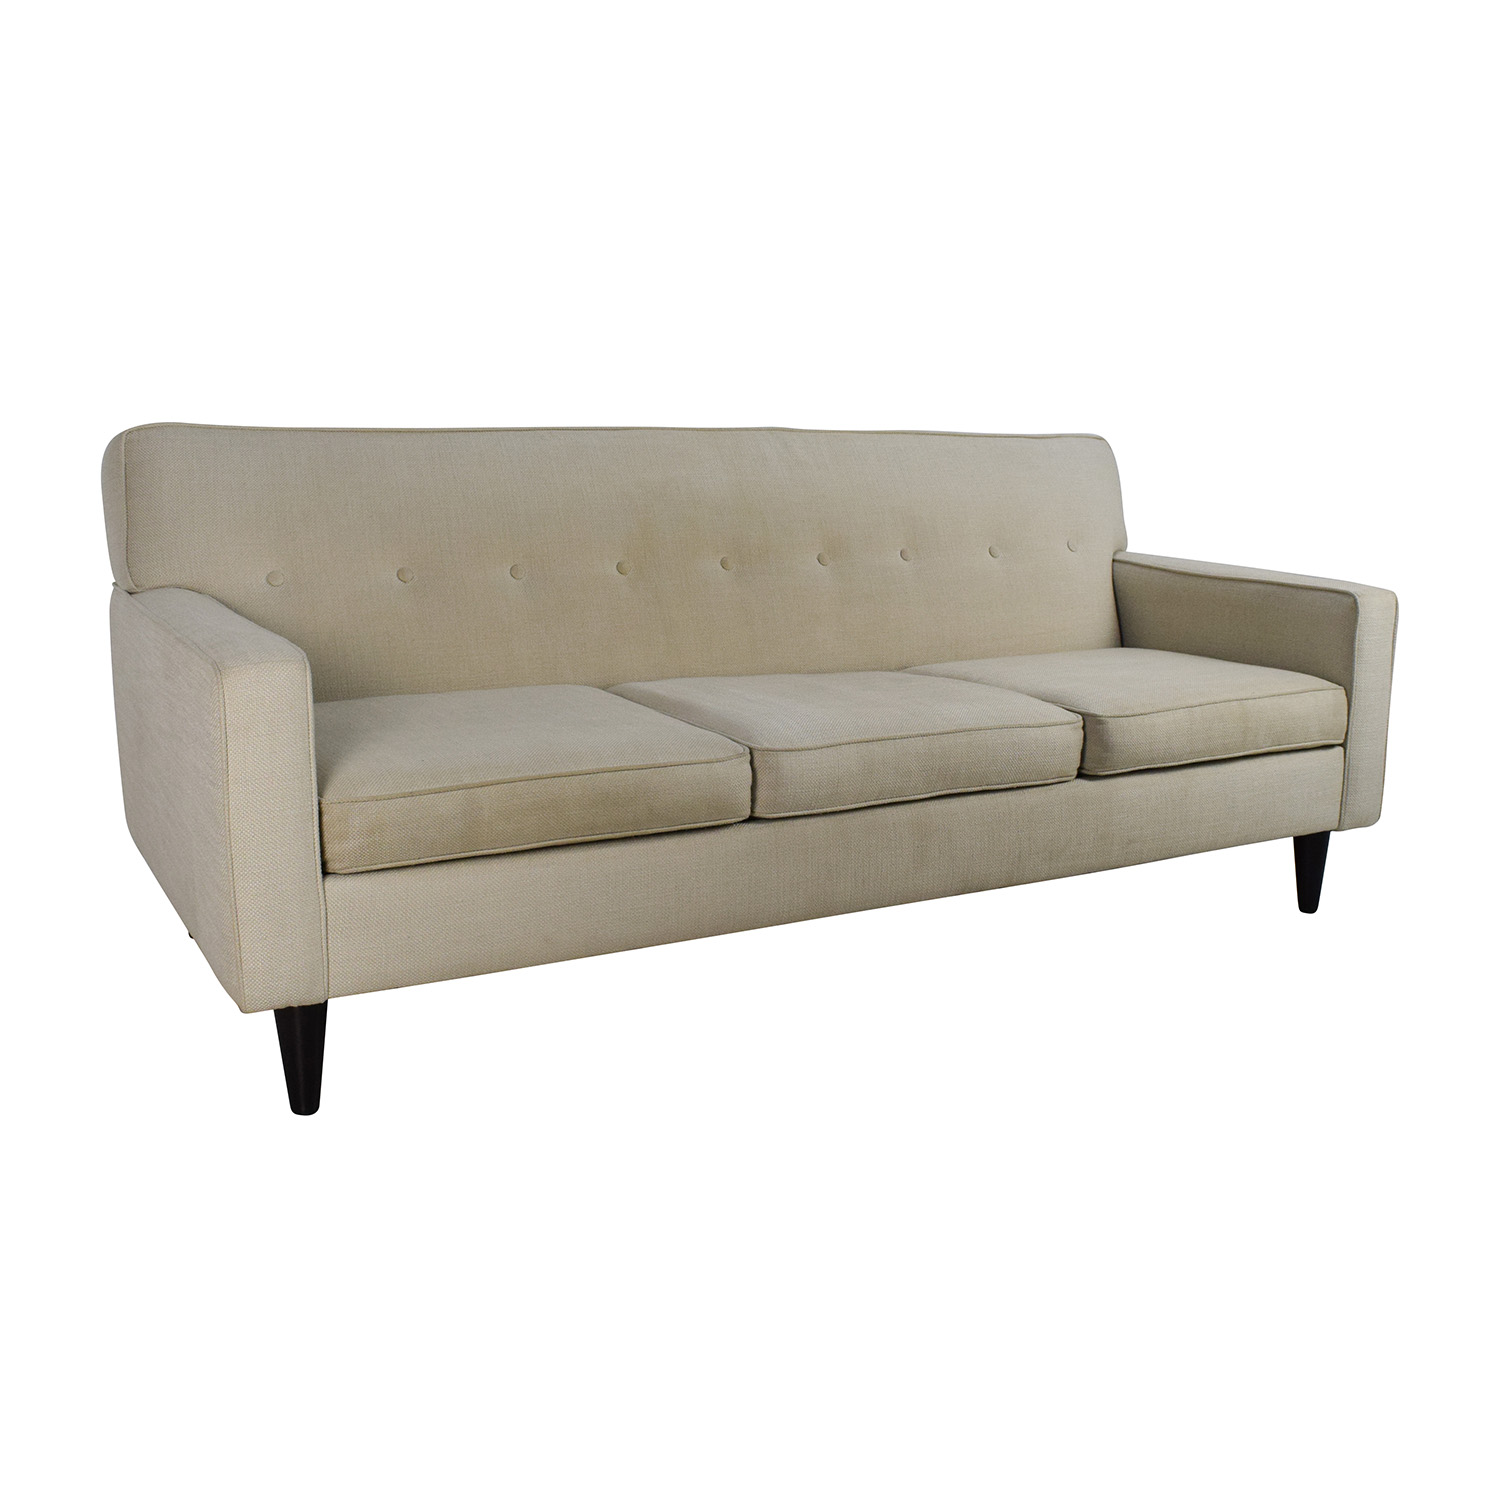 69% OFF Max Home Furniture Max Home Mid Century Sofa Sofas